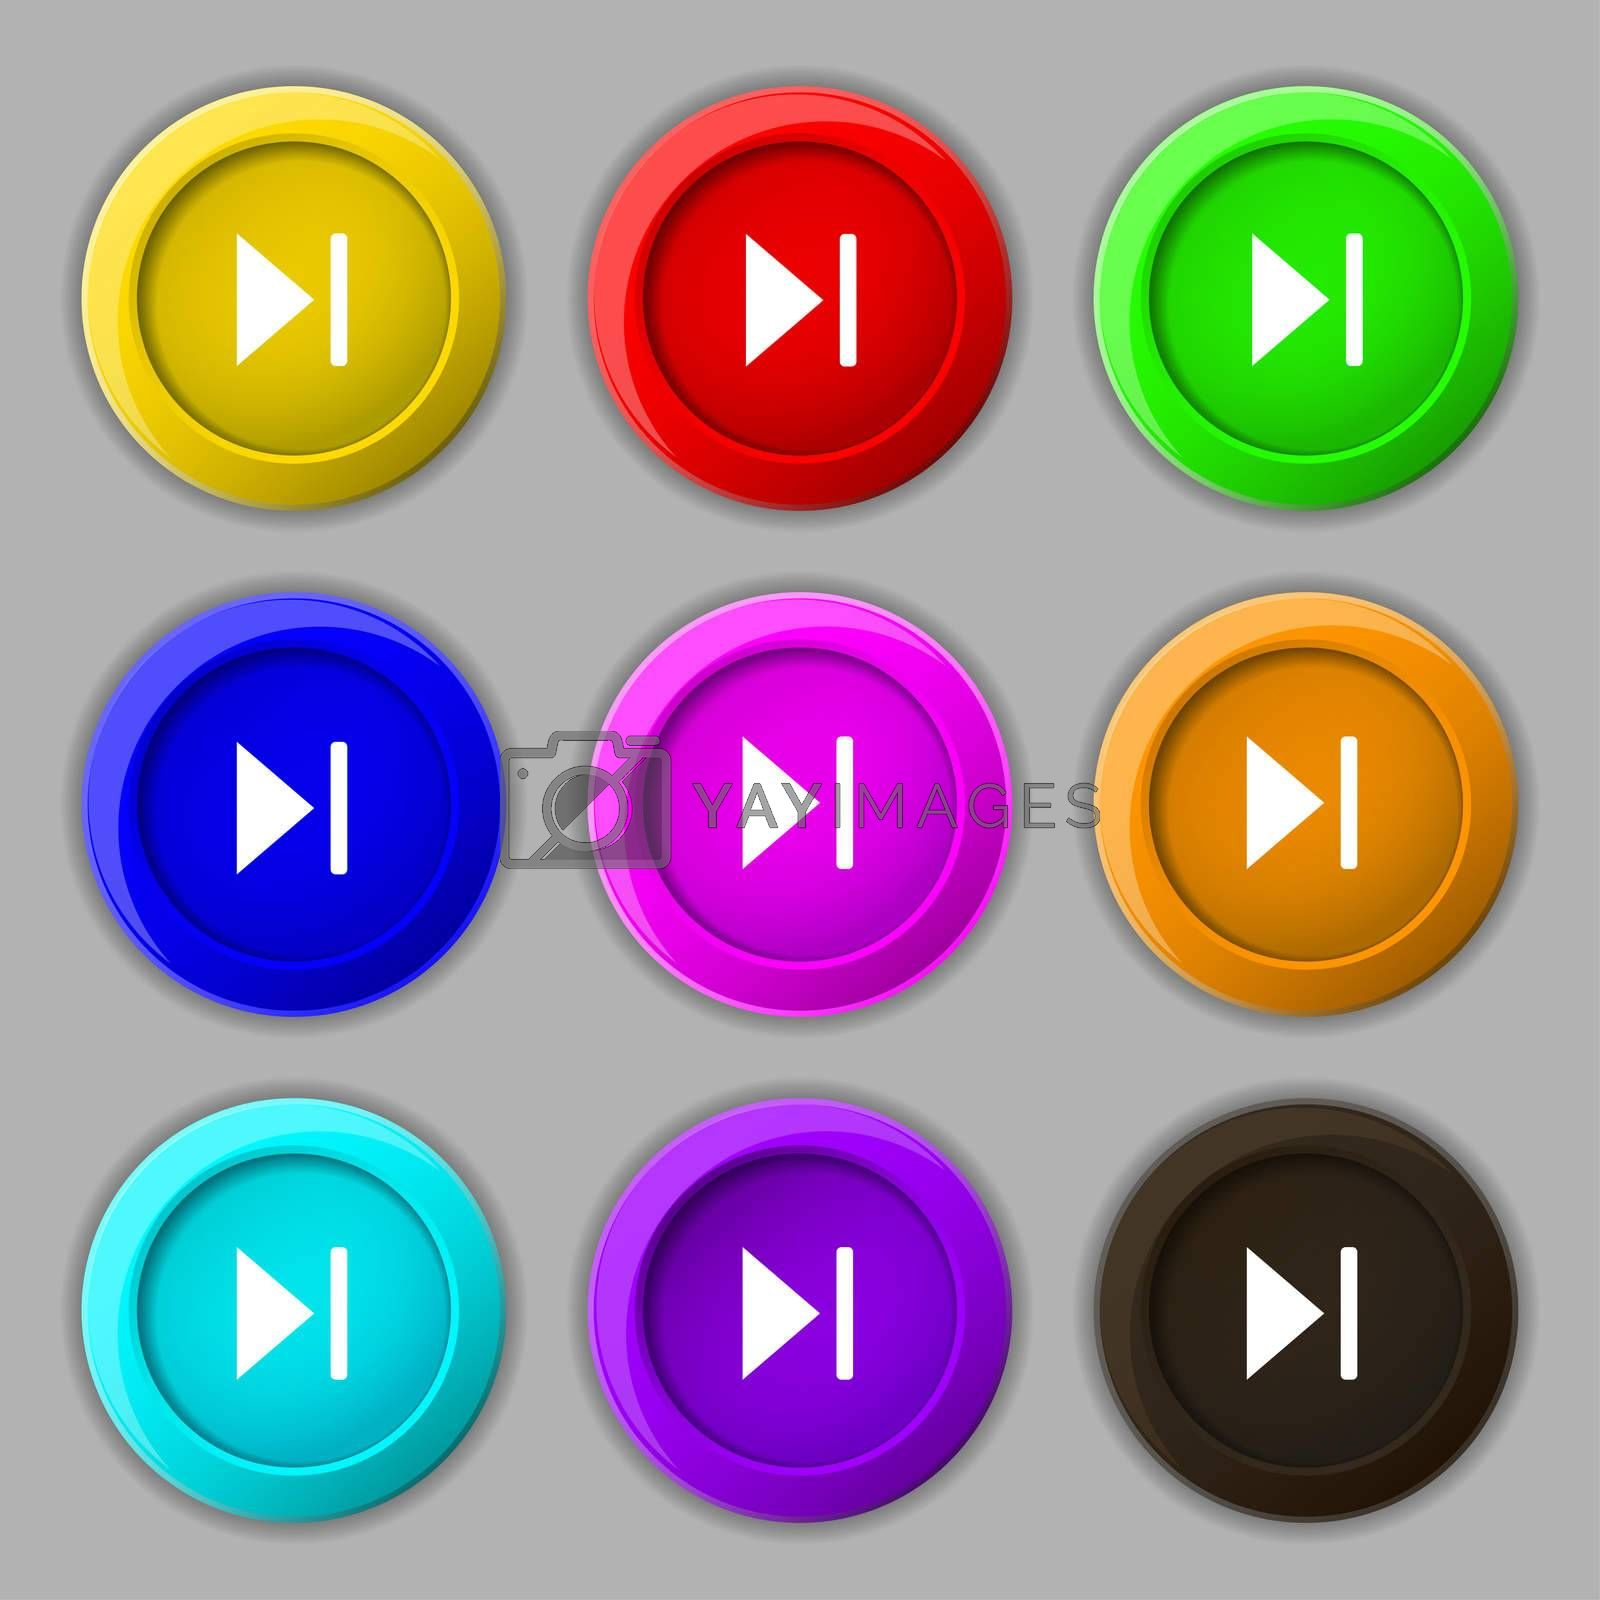 next track icon sign. symbol on nine round colourful buttons.  by Serhii Lohvyniuk